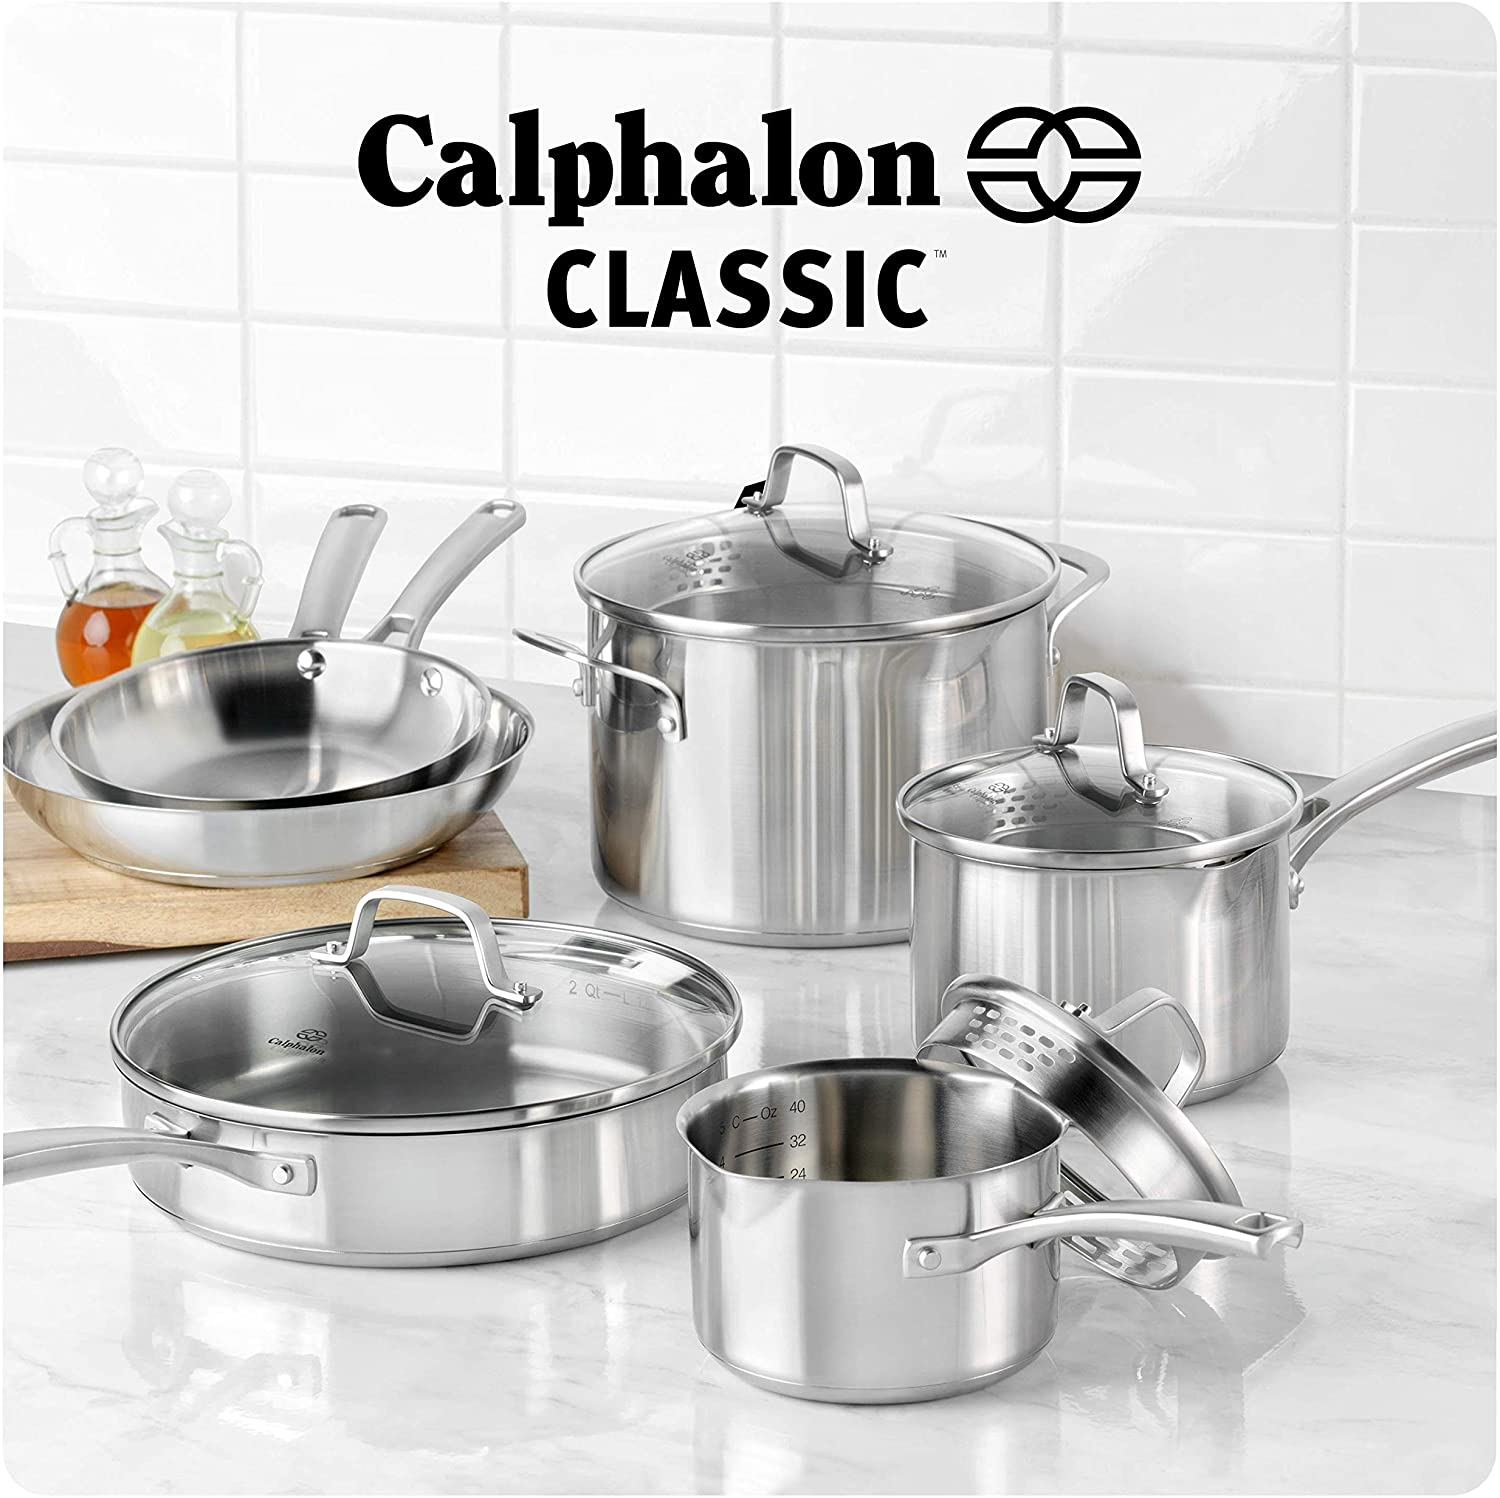 Calphalon pots and pans - best cookware for electric coil stove 2020